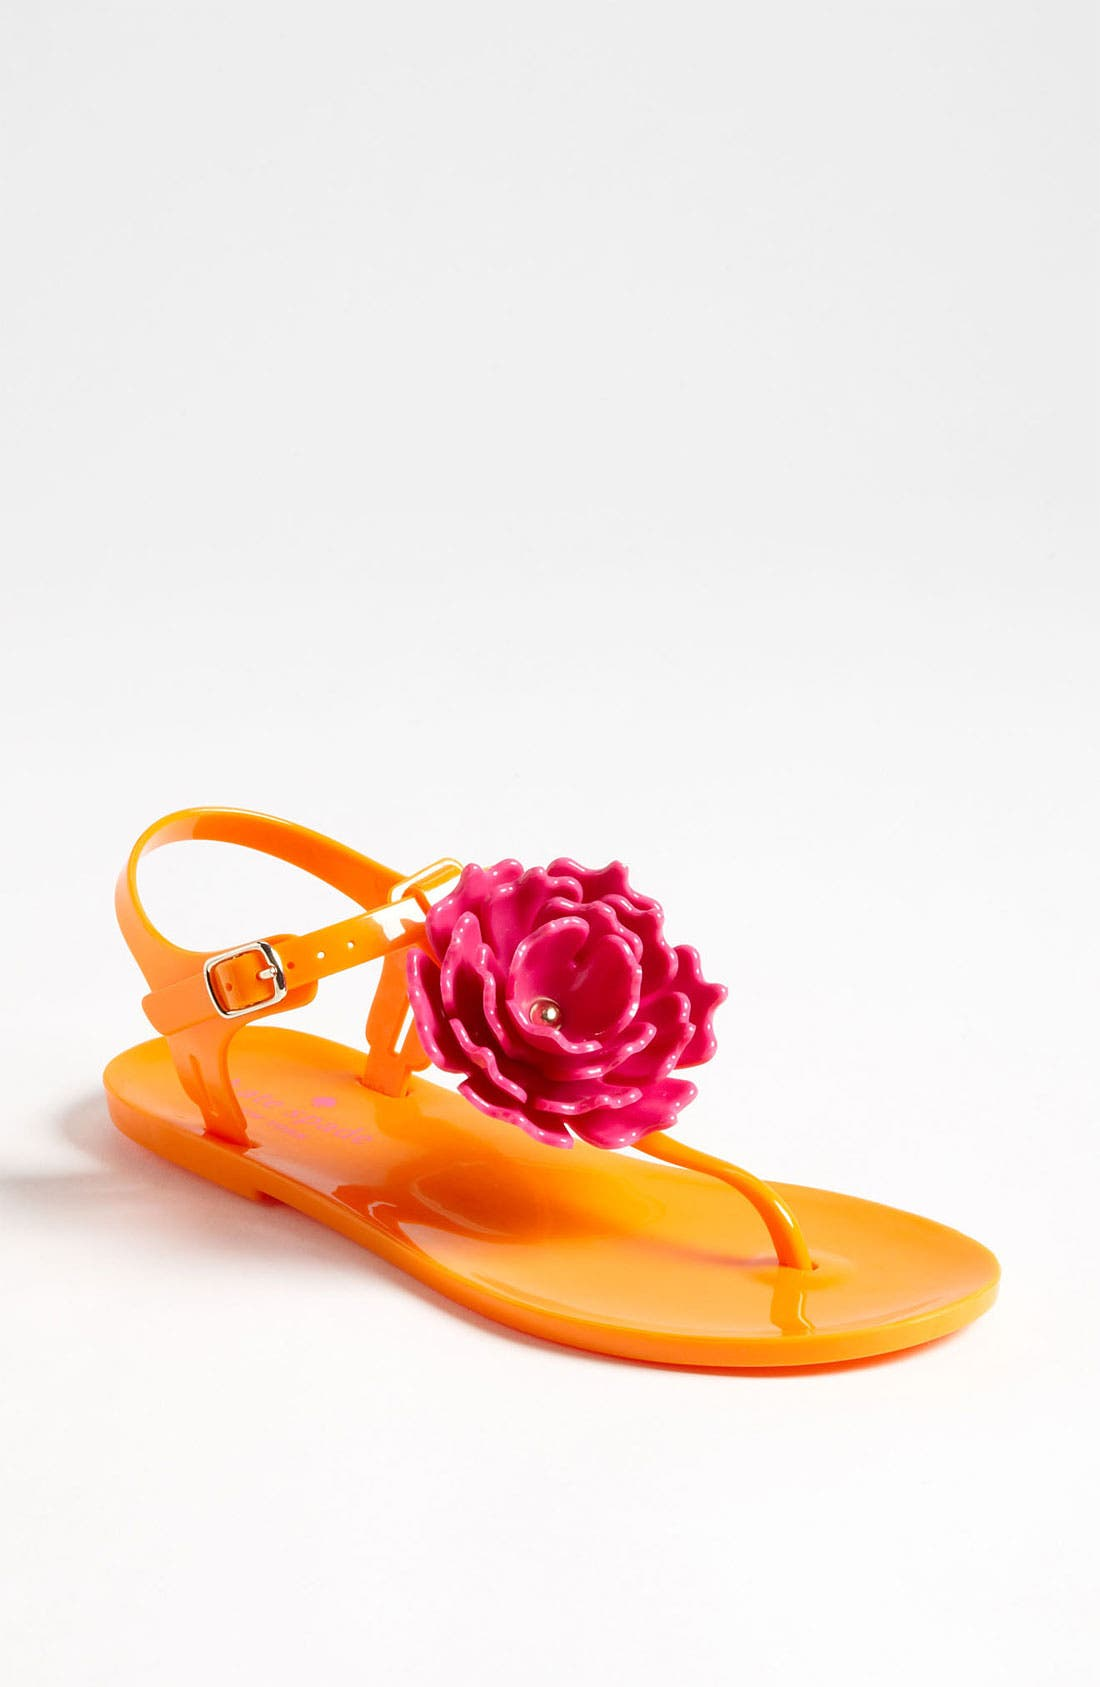 Alternate Image 1 Selected - kate spade new york 'fiala' sandal